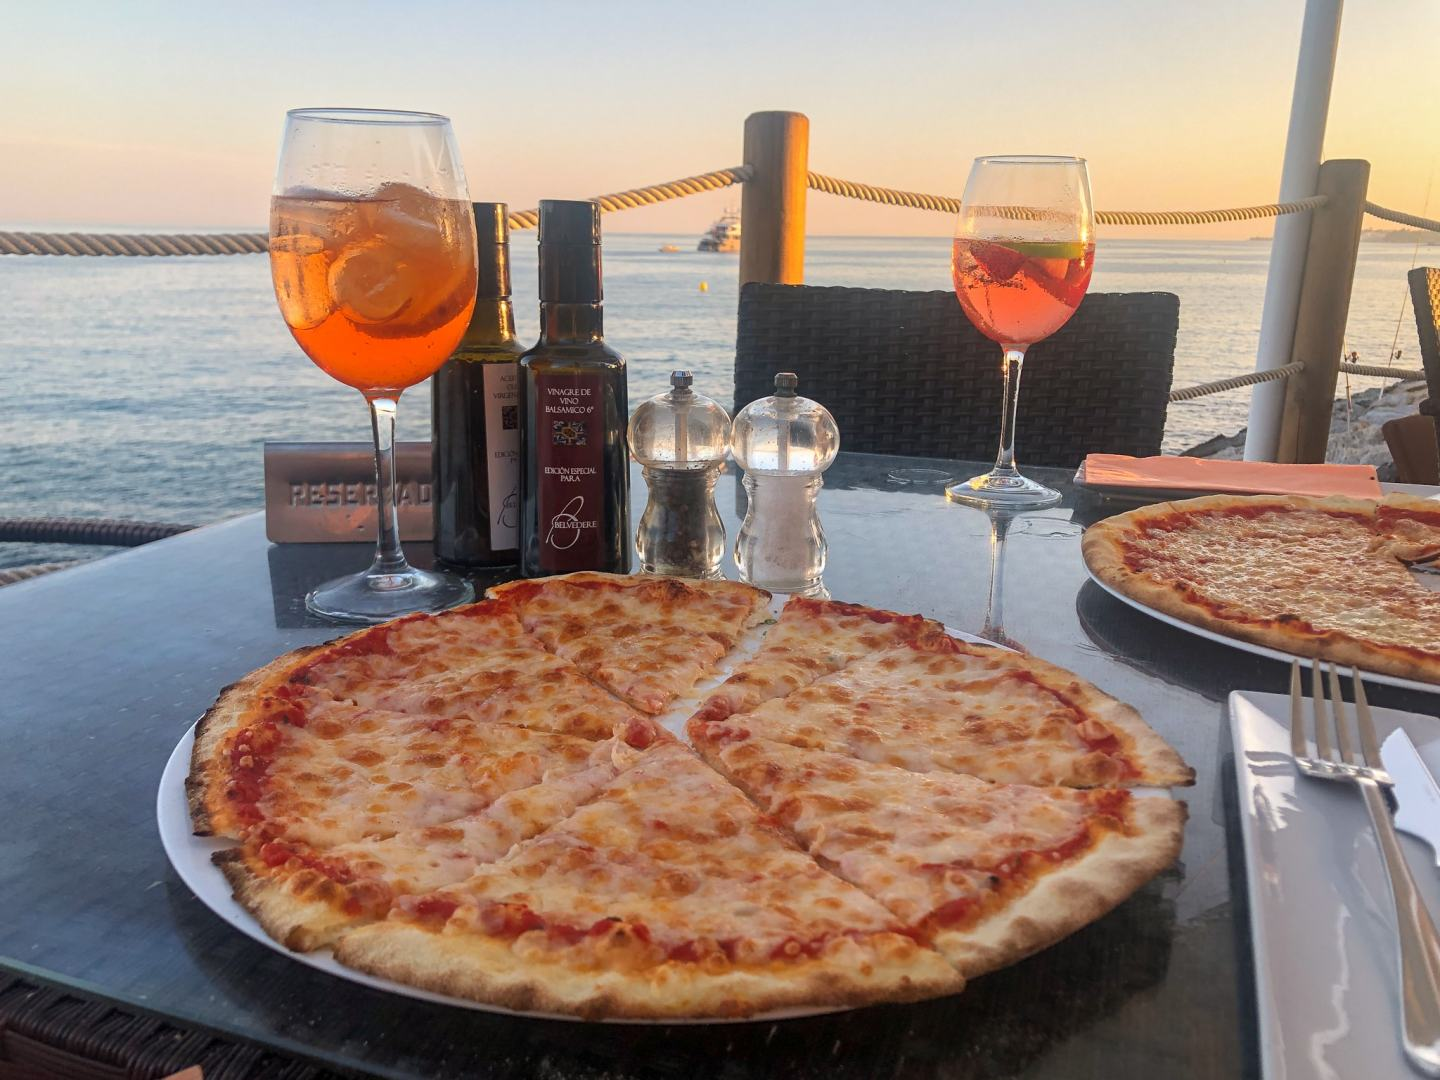 Pizza and Aperol